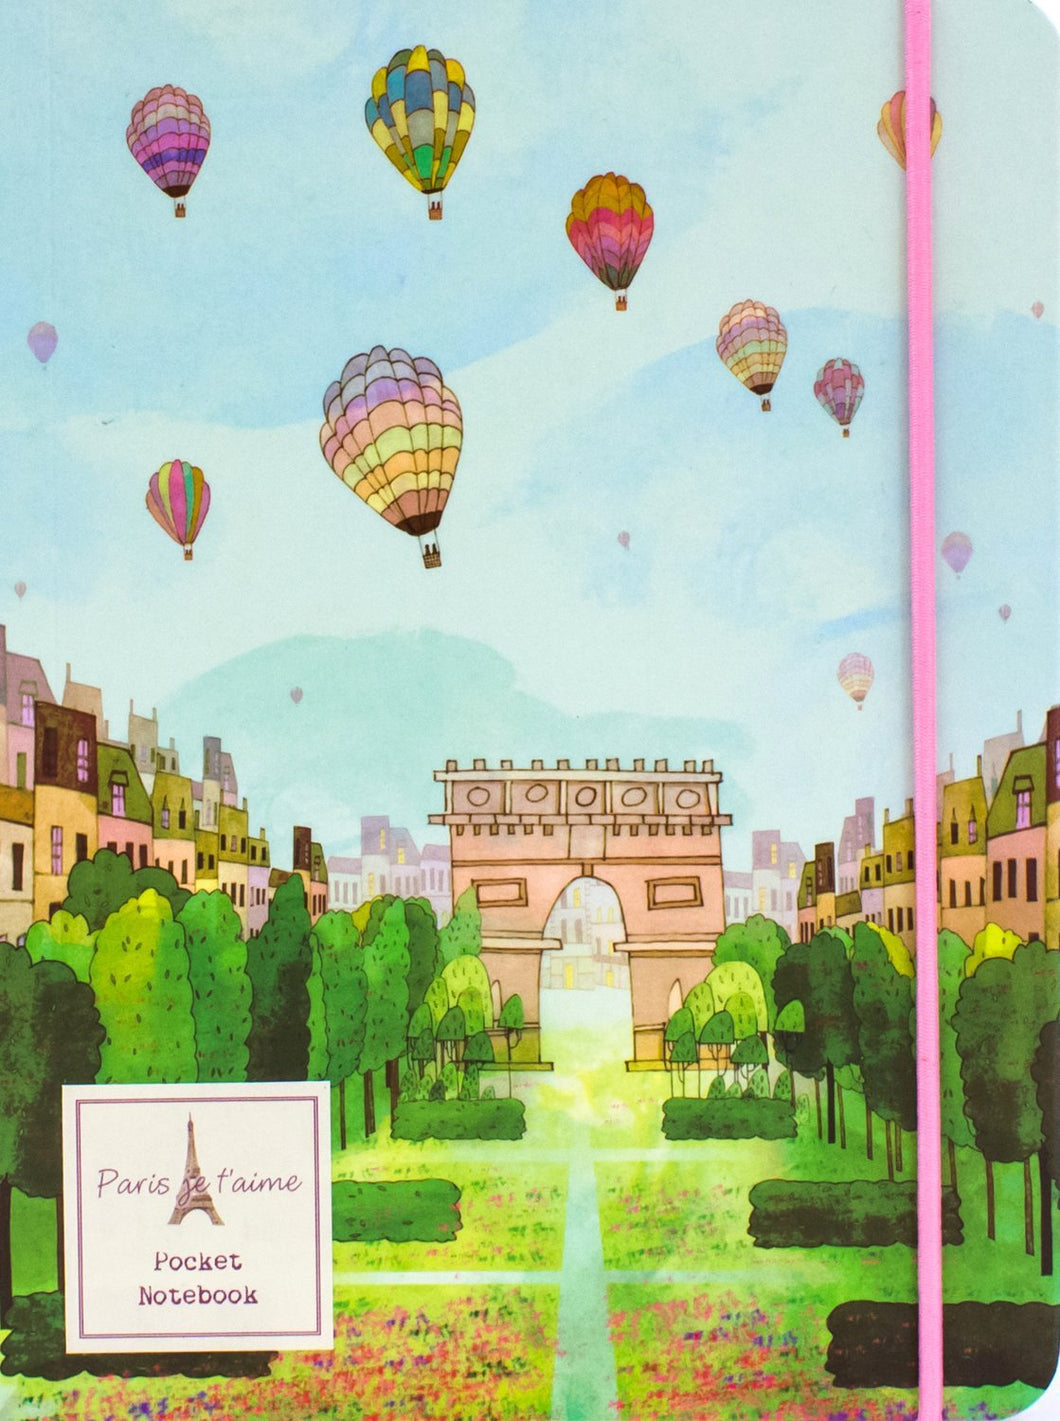 Paris je t'aime: Pocket Notebook